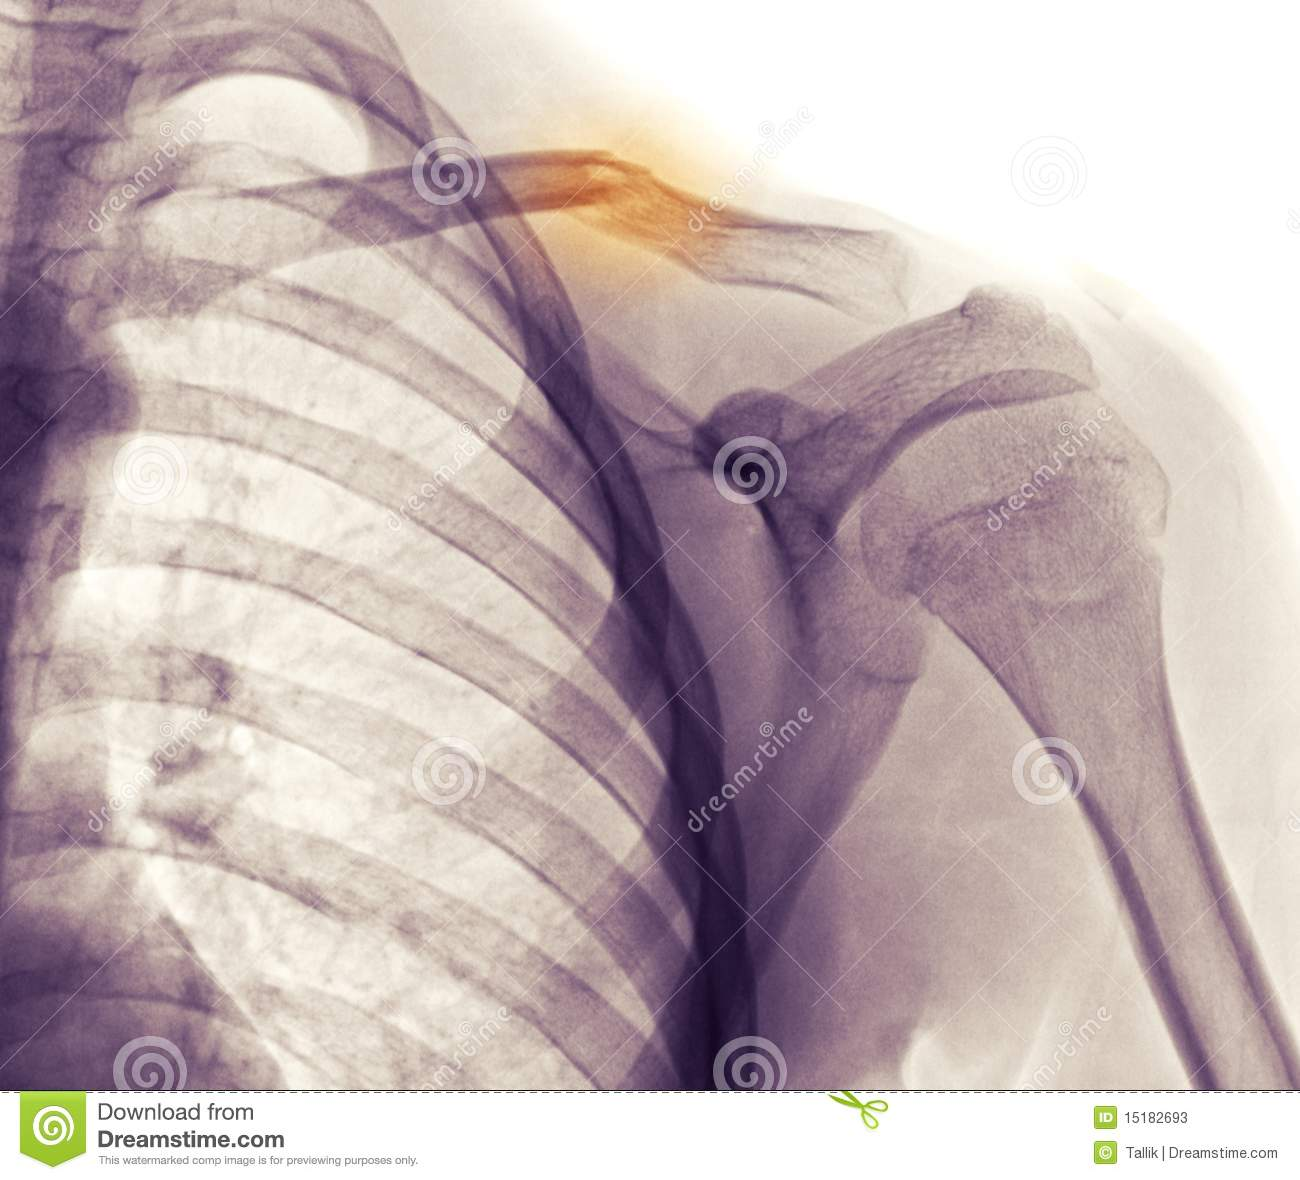 Shoulder X-ray, Clavicle (collarbone) Fracture Stock Photos - Image ...